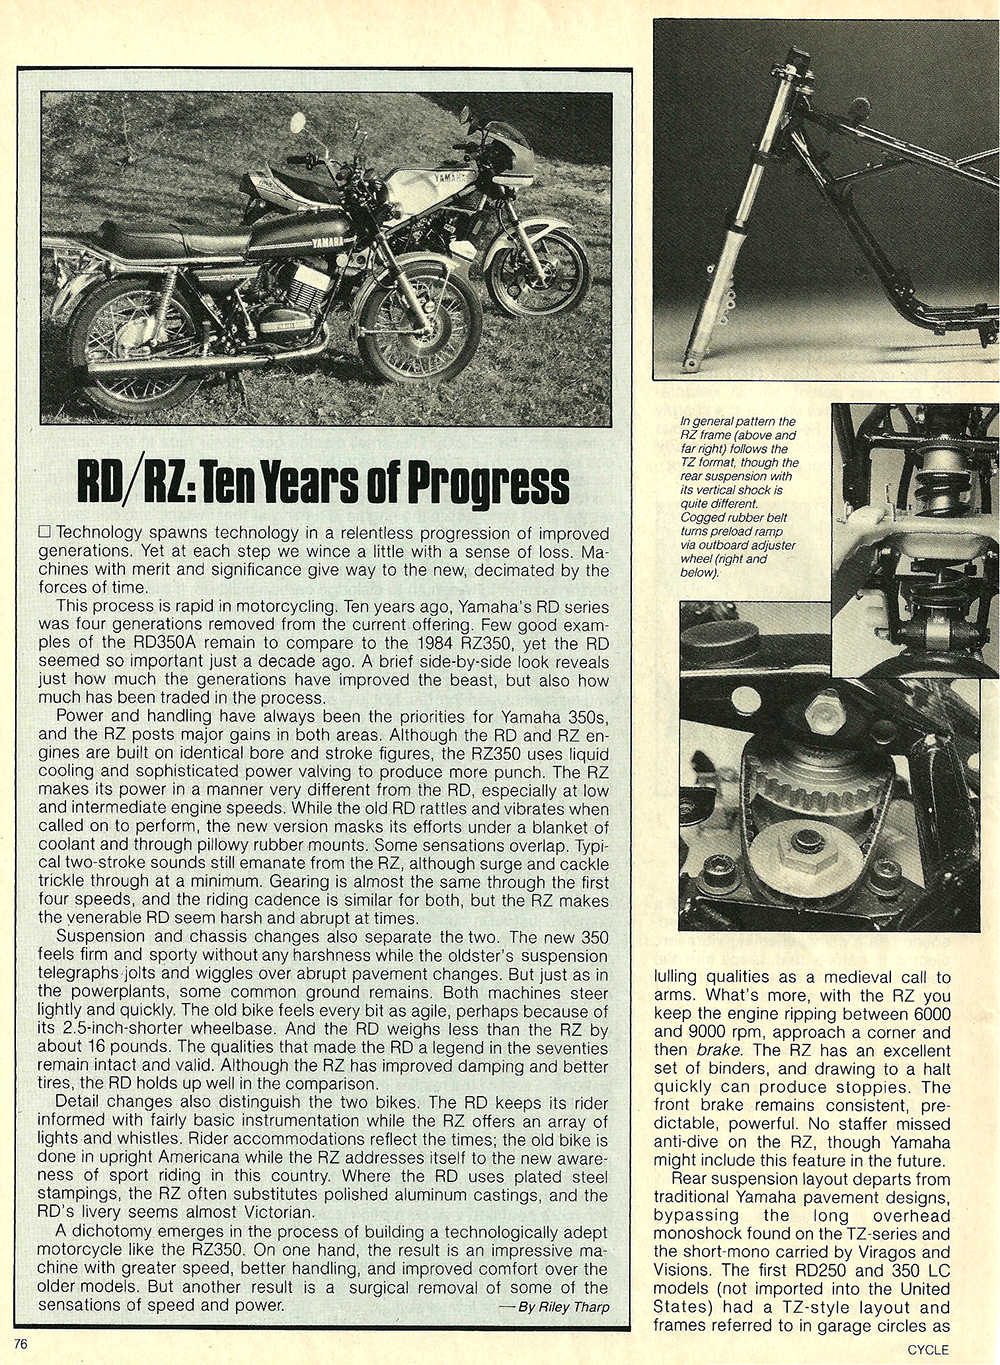 1984 Yamaha RZ350L road test 07.jpg